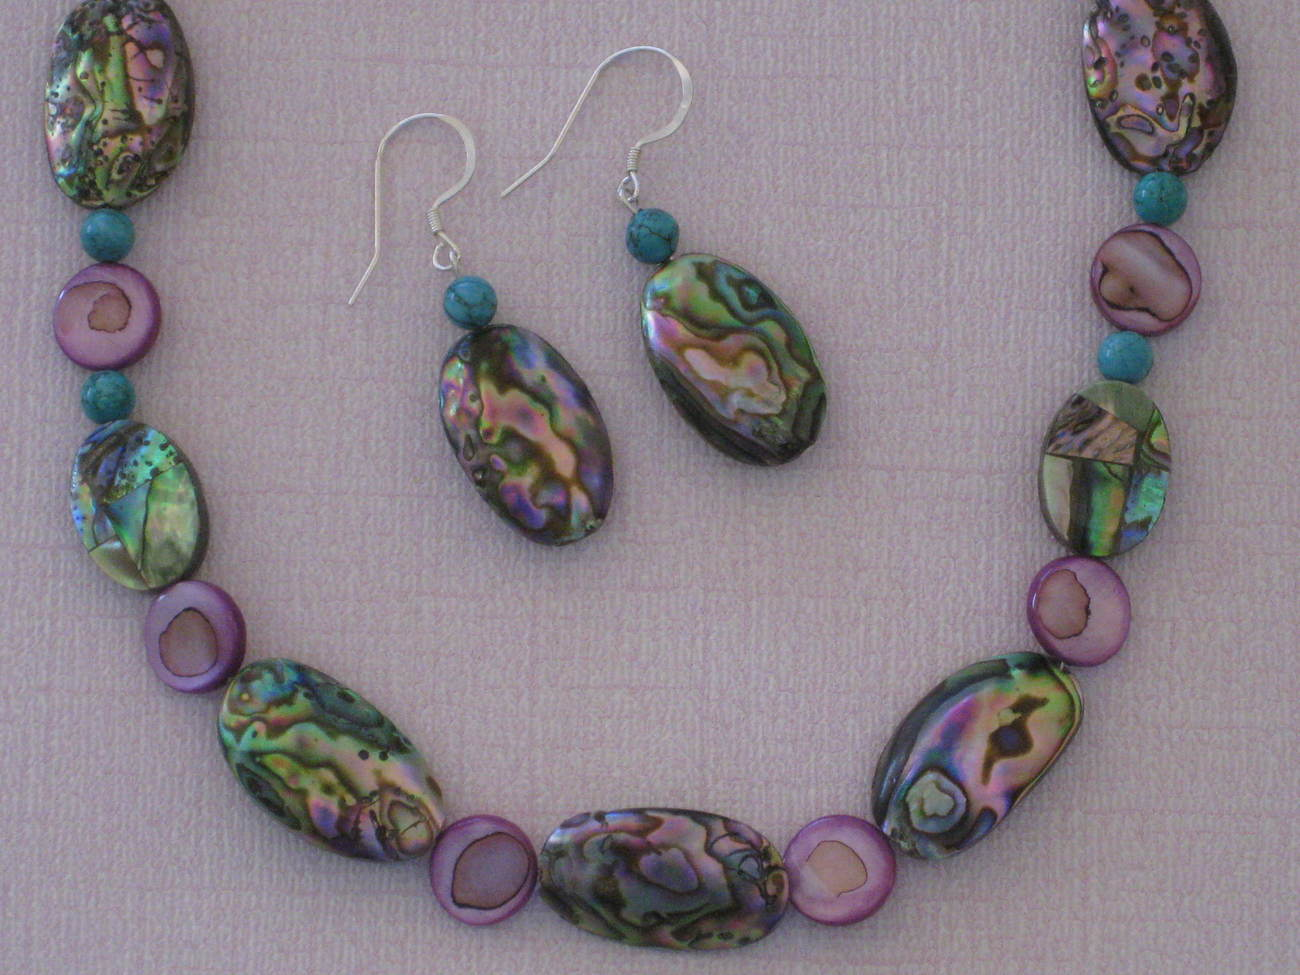 Abalone Shell Necklace Earrings Set Handmade